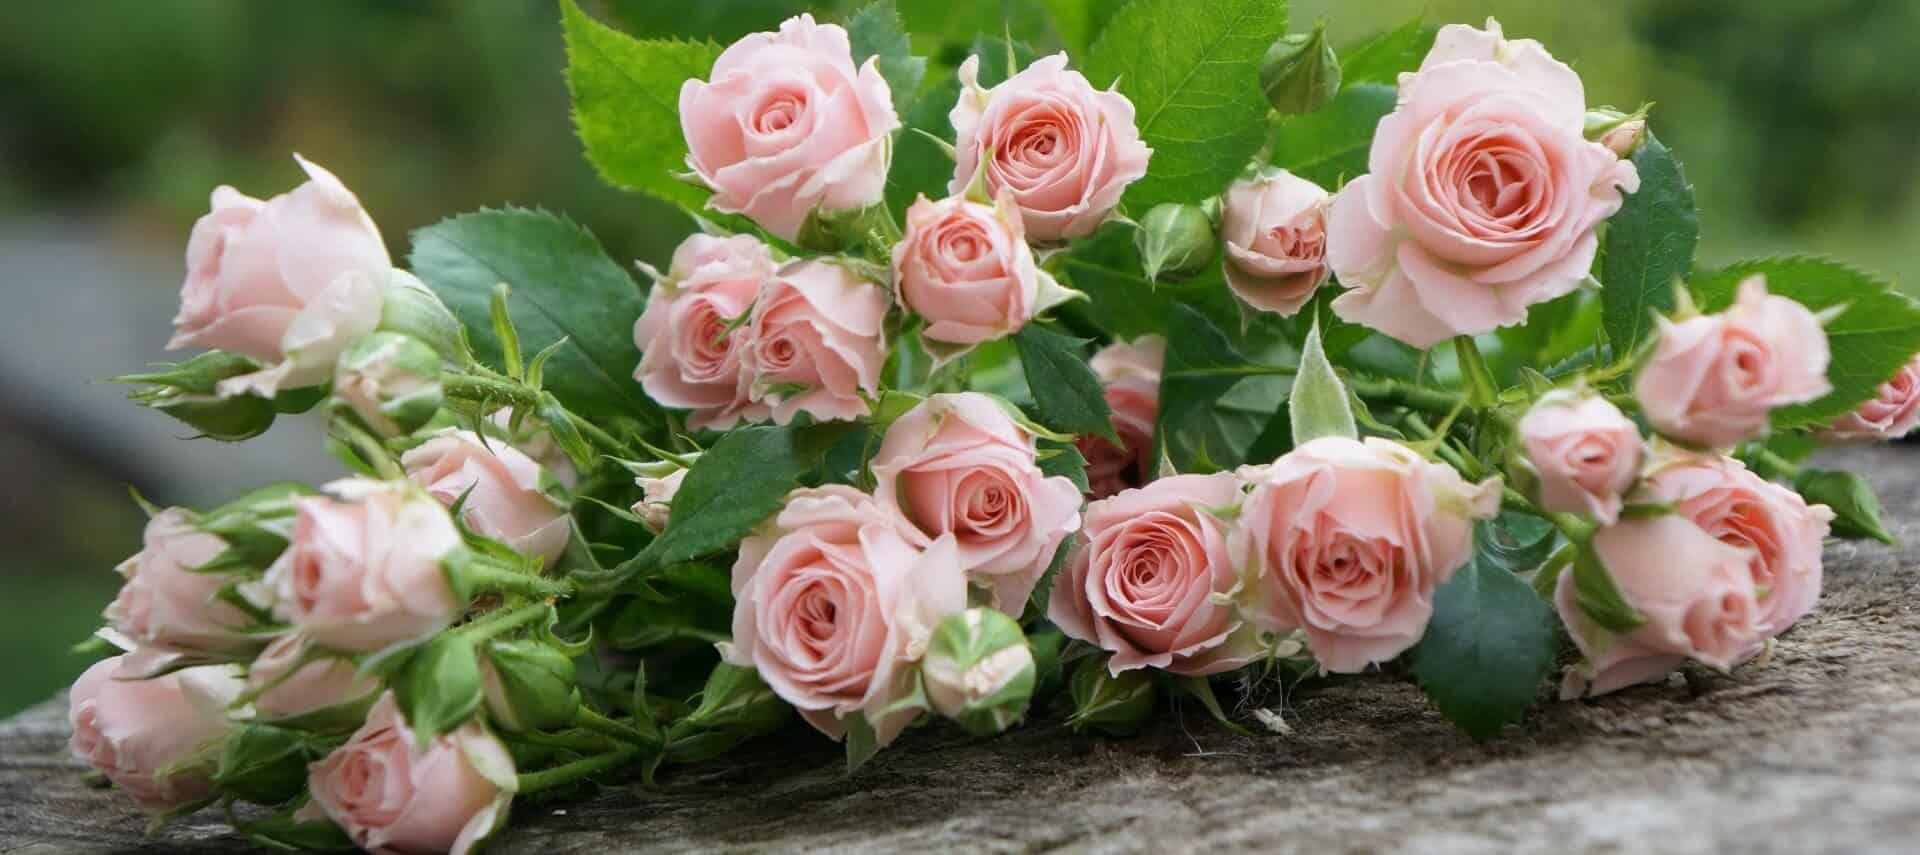 Bouquet of blush pink roses and bright green leaves